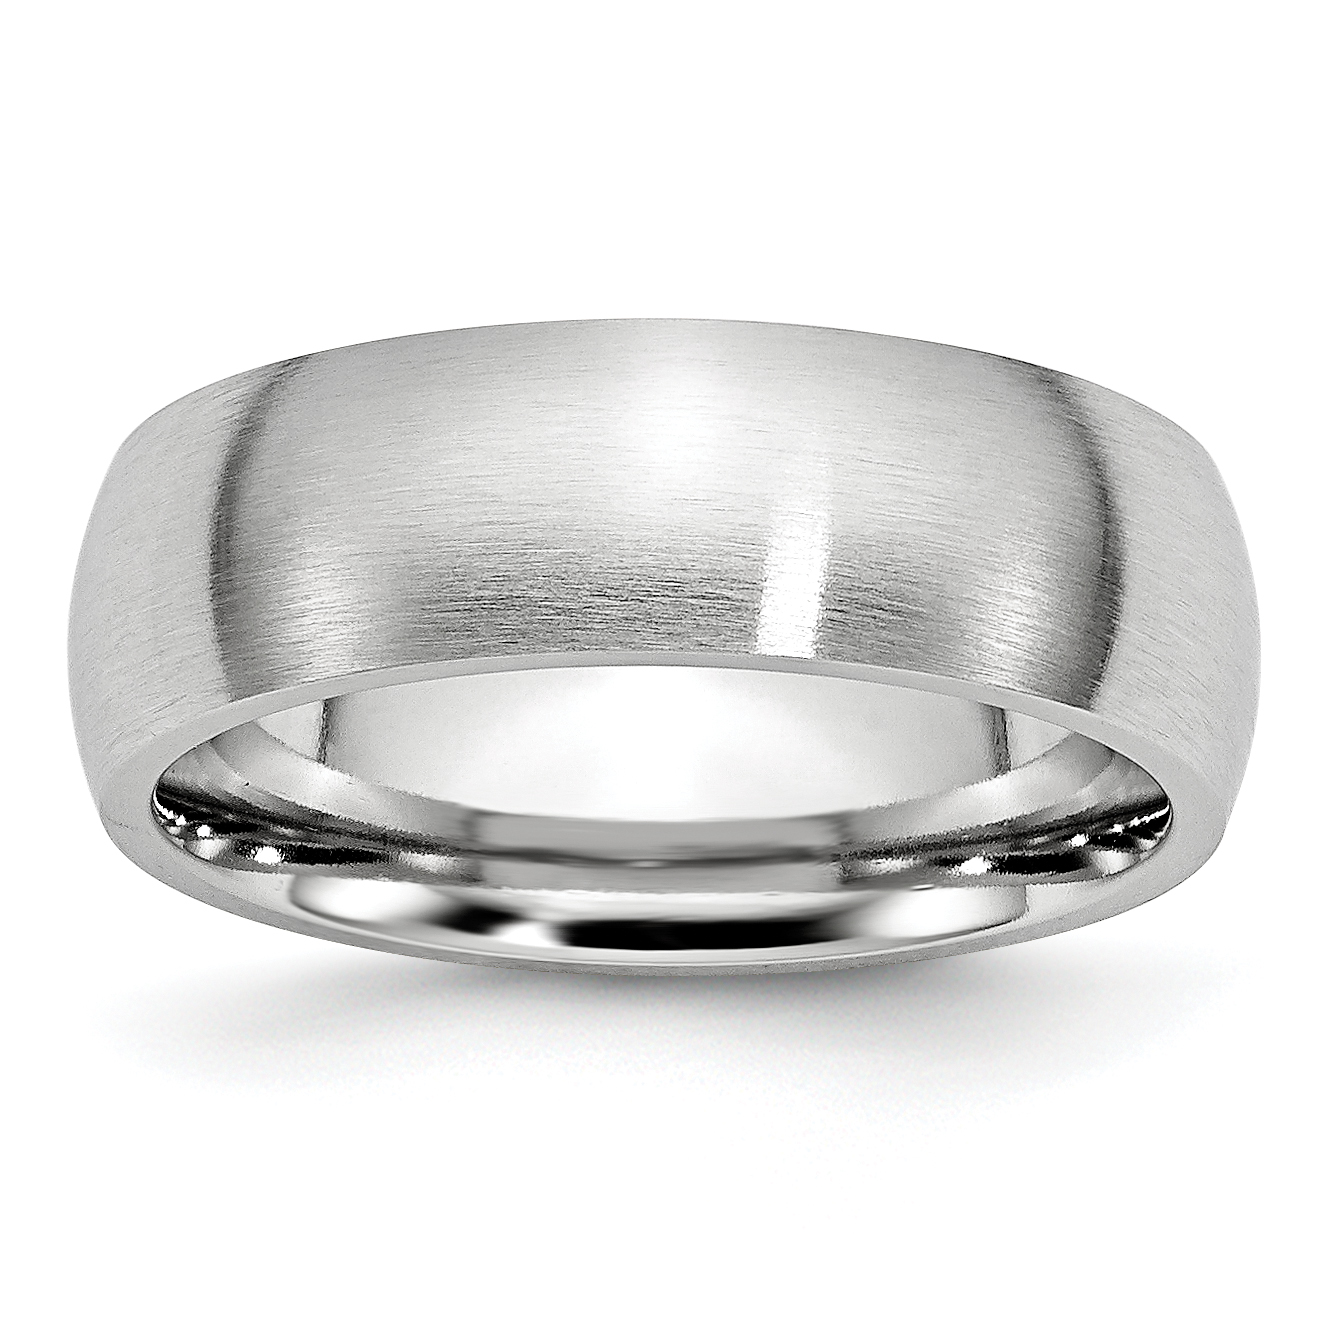 Cobalt 7mm Wedding Ring Band Size 10.00 Classic Domed Fashion Jewelry Gifts For Women For Her - image 9 de 9